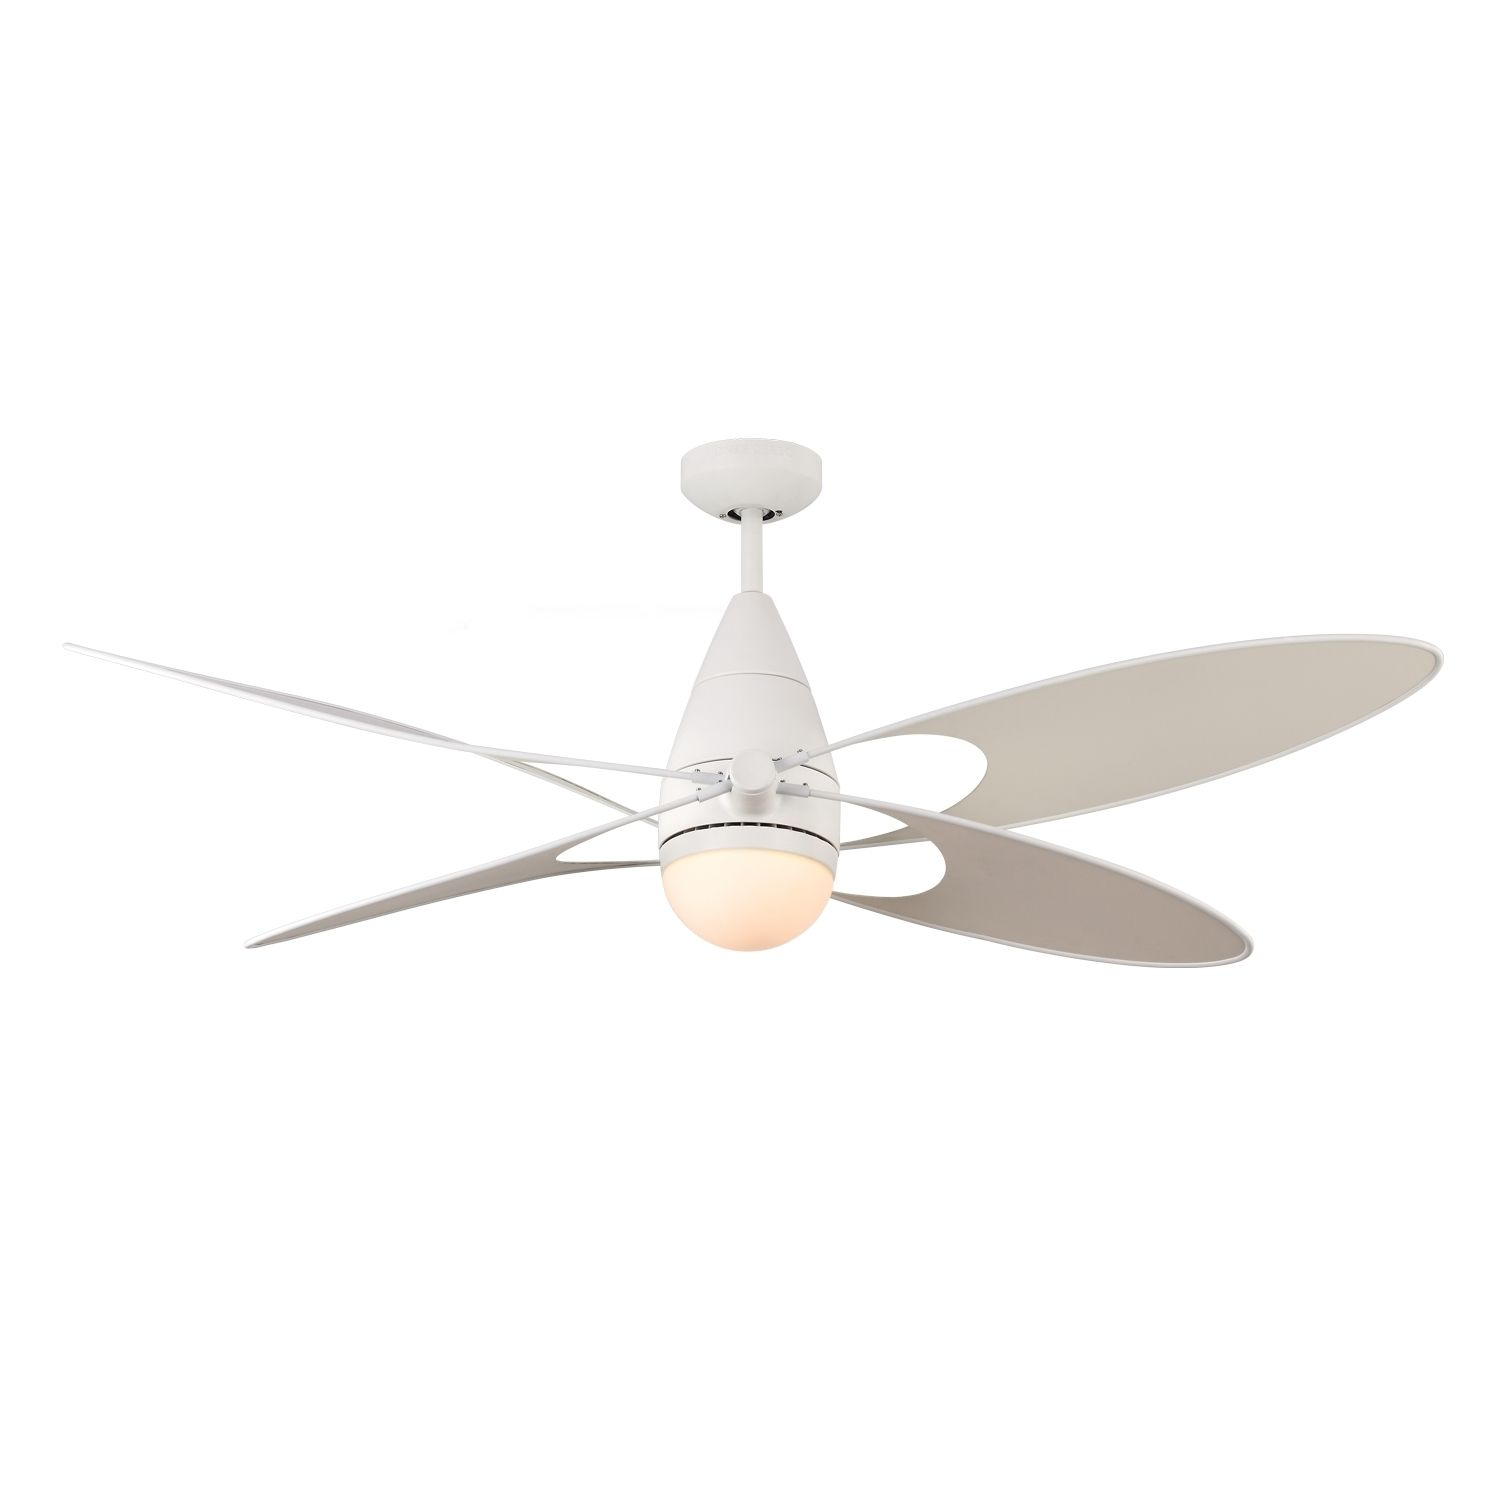 Online Shopping Bedding Furniture Electronics Jewelry Clothing More Ceiling Fan With Light Ceiling Fan Modern Ceiling Fan